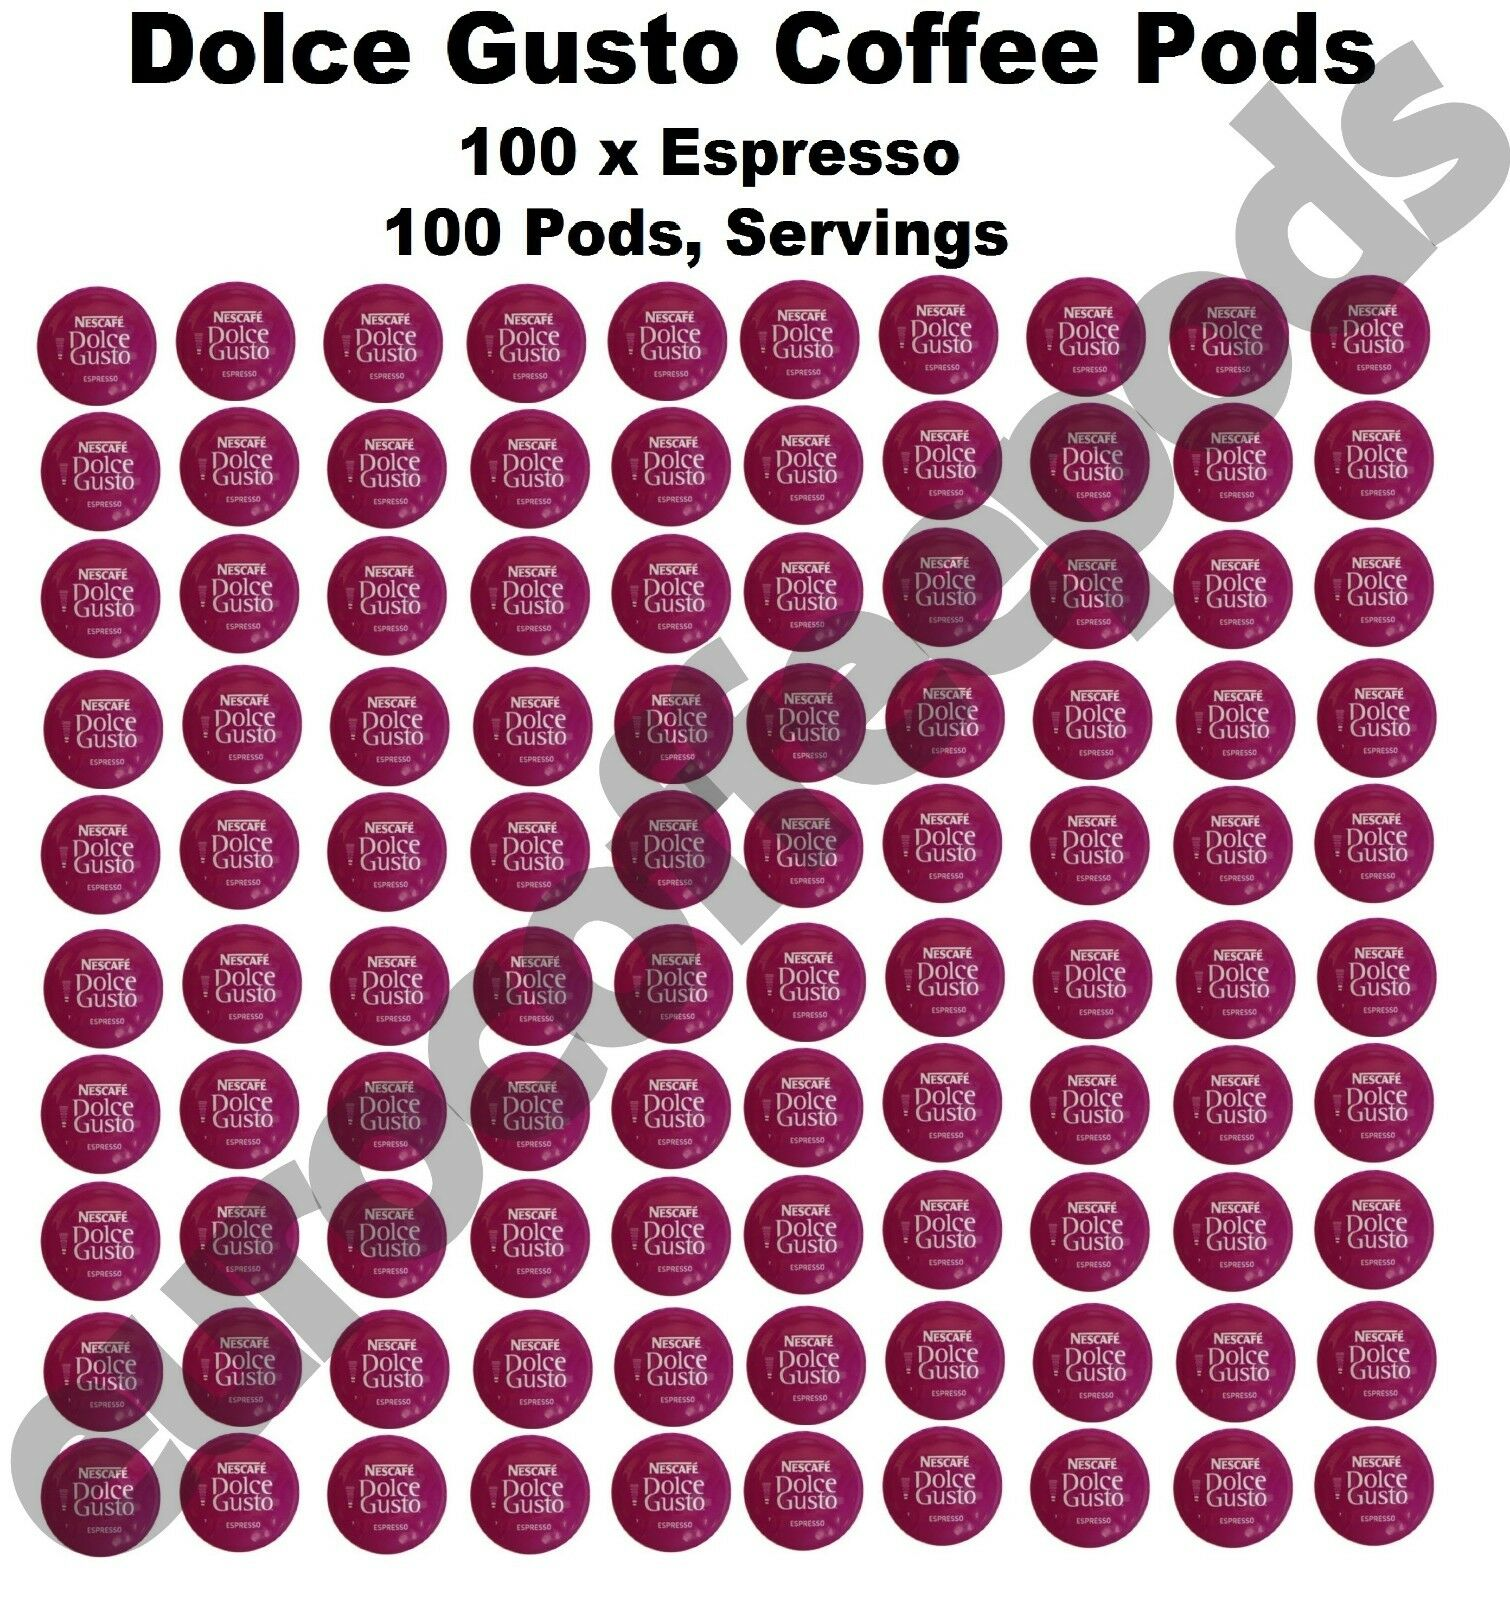 100 x Dolce Gusto Espresso Coffee Pods, Capsules, 100 Drinks Sold Loose